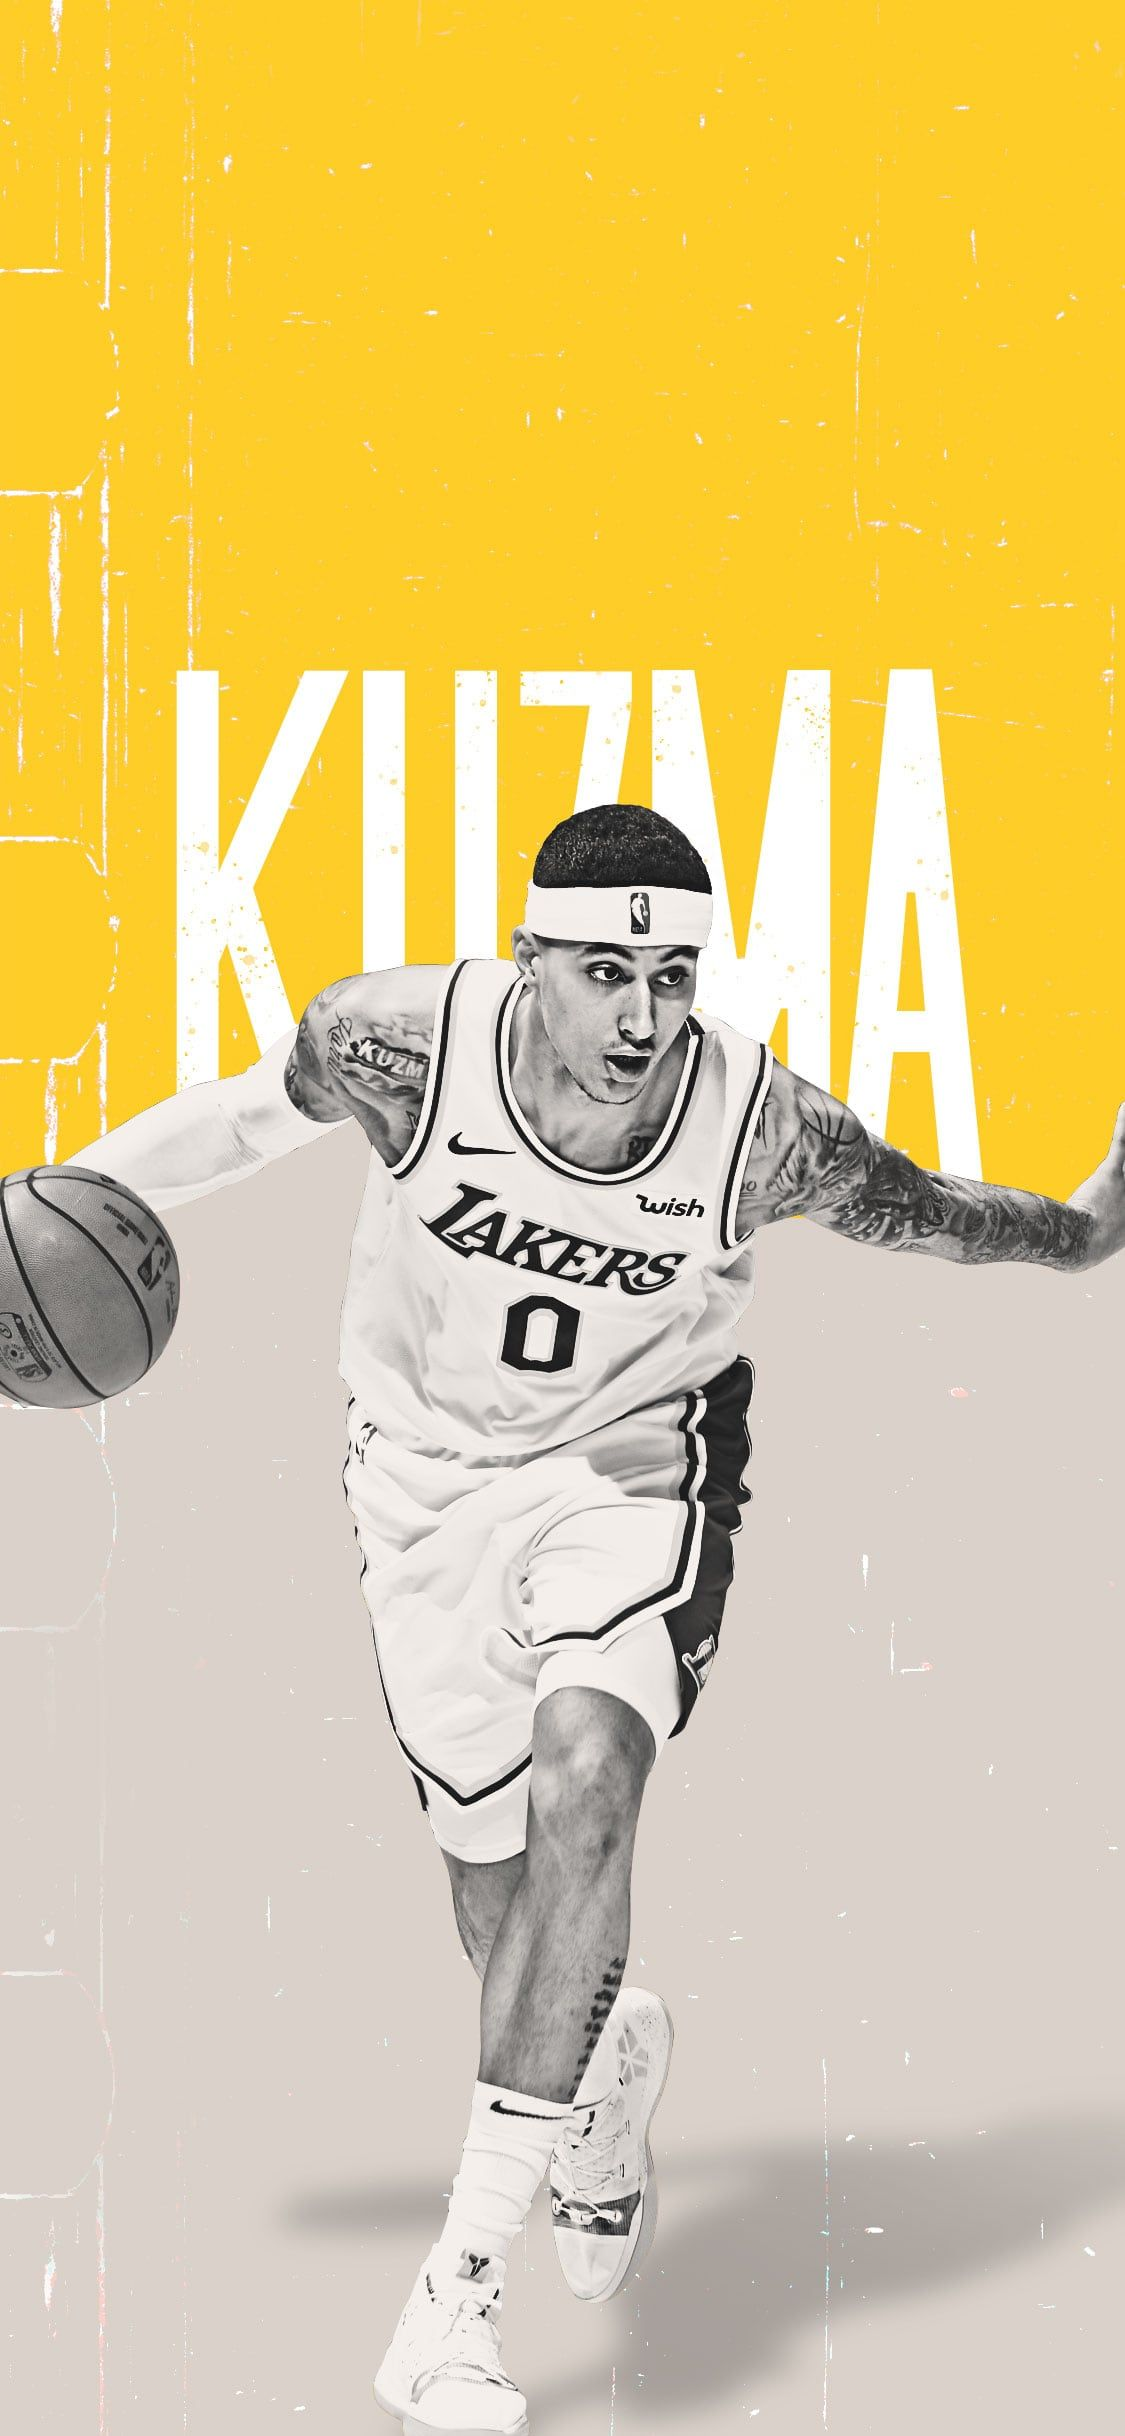 Lakers Wallpapers And Infographics In 2020 Lakers Wallpaper Kyle Kuzma Nba Wallpapers